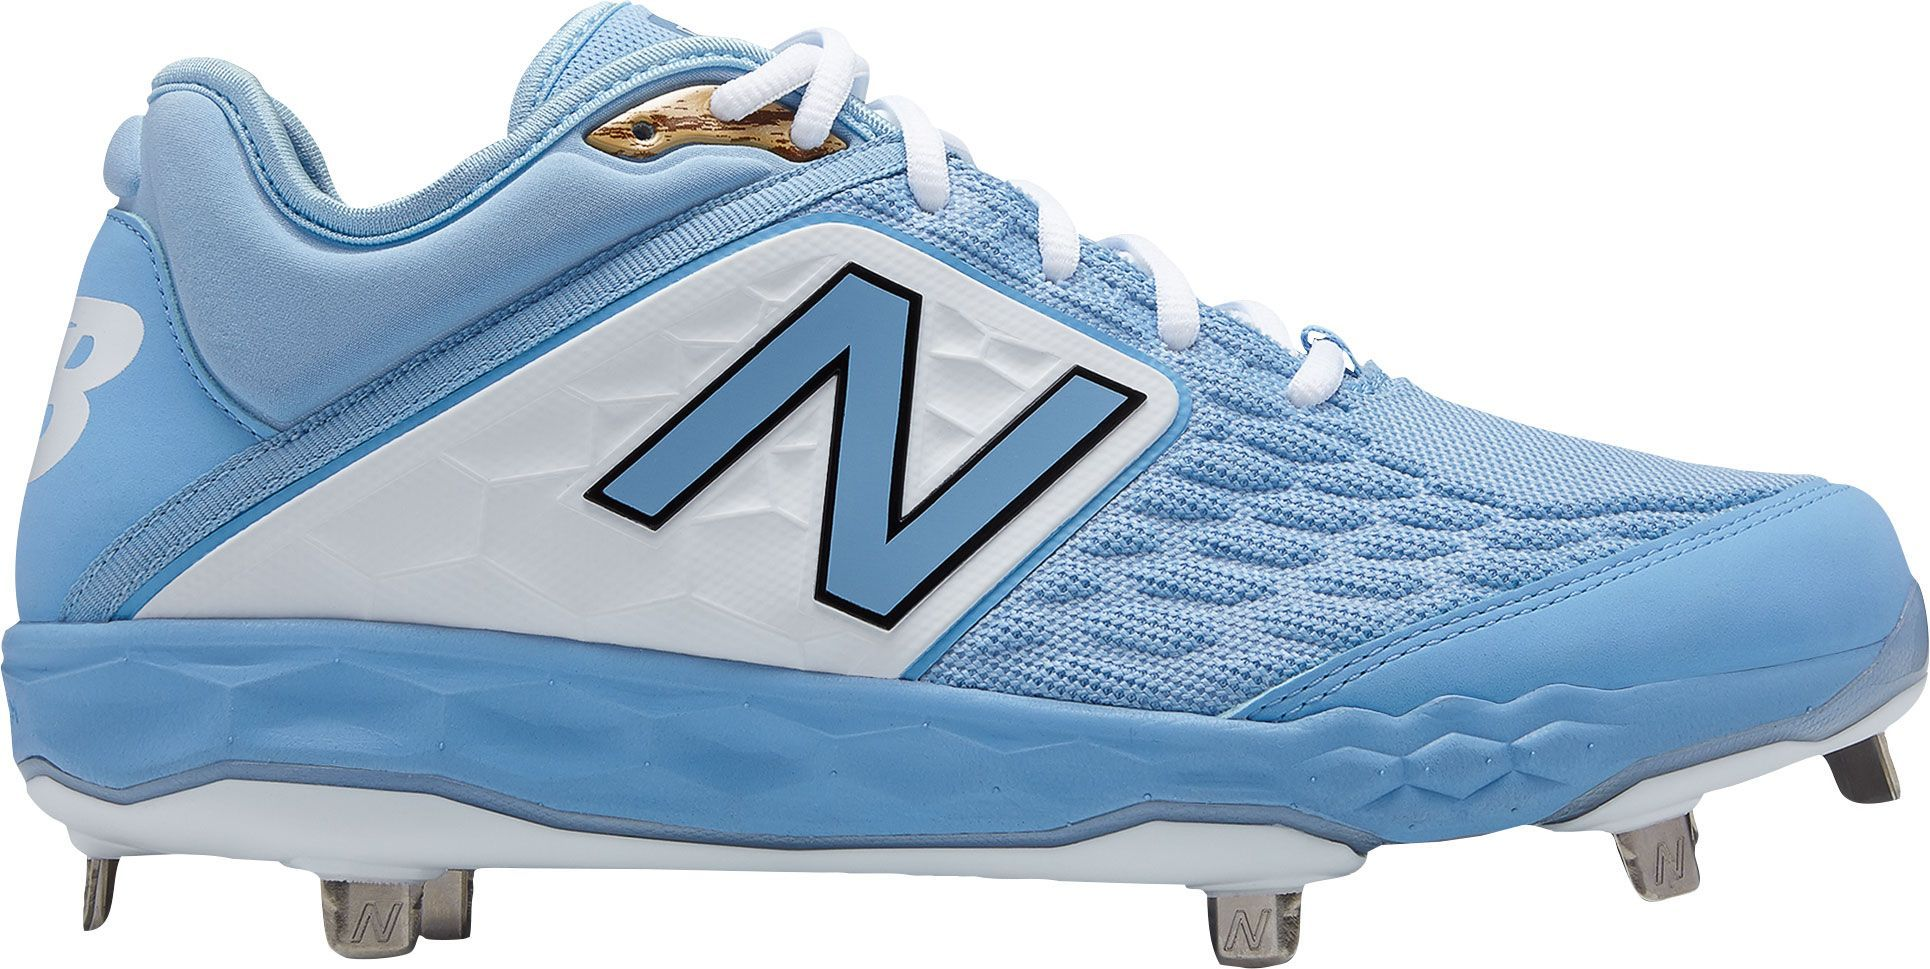 New Balance Men s 3000 V4 Metal Baseball Cleats 29c51b847b2